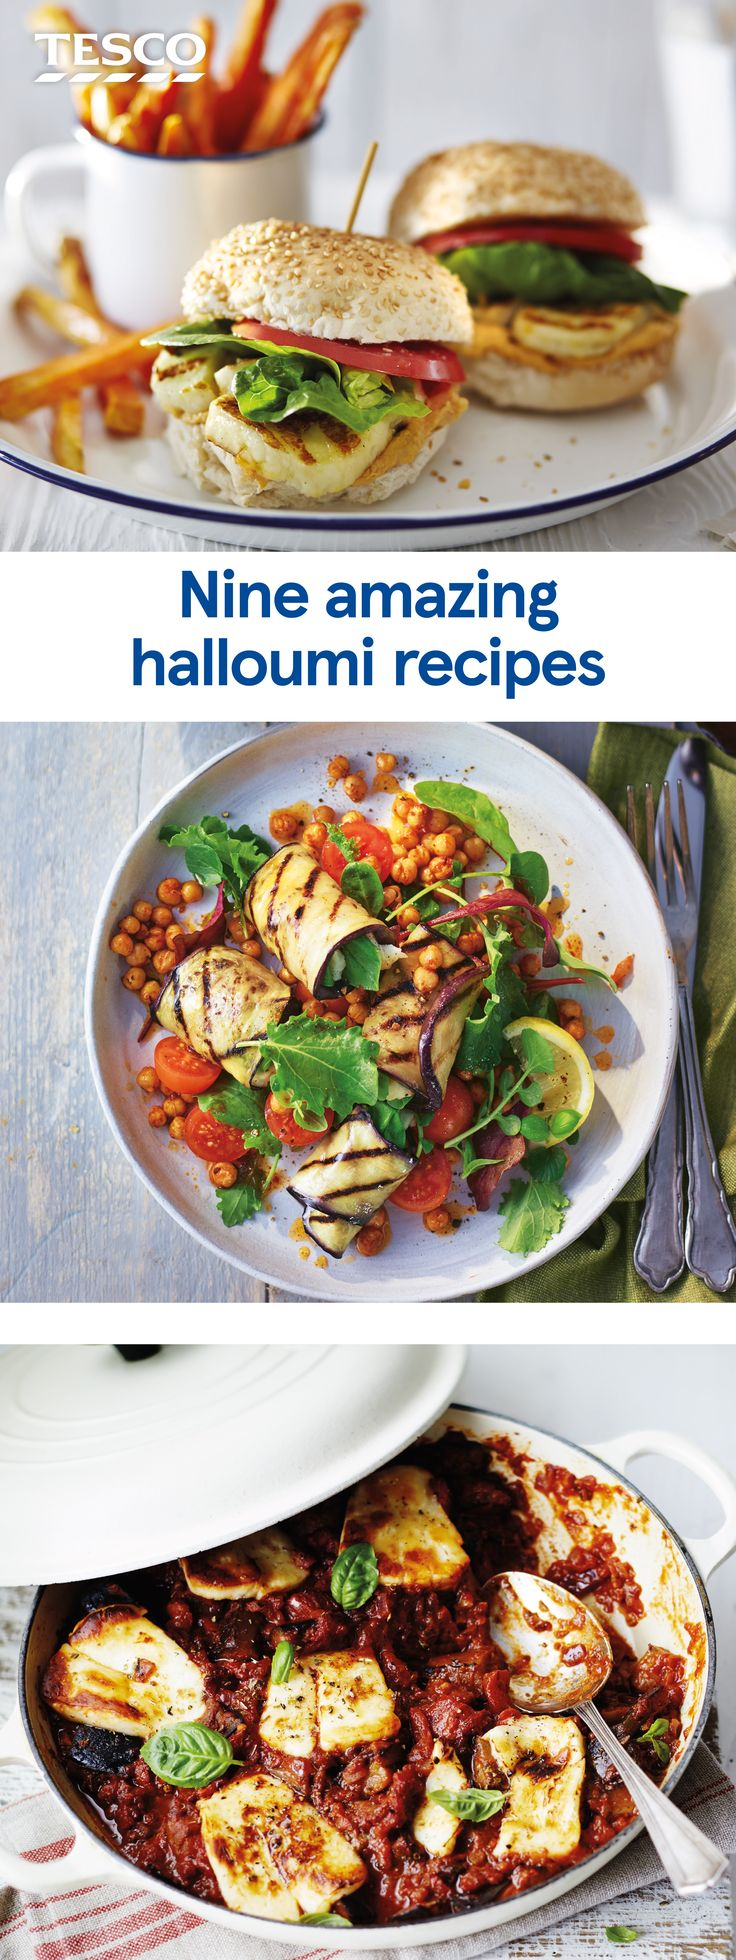 Try a new way with halloumi with these amazing recipes and ideas. Grilled, fried, baked, grated and even barbecued, halloumi is a wonderfully versatile cheese and perfect for easy, cheesy recipes.   Tesco